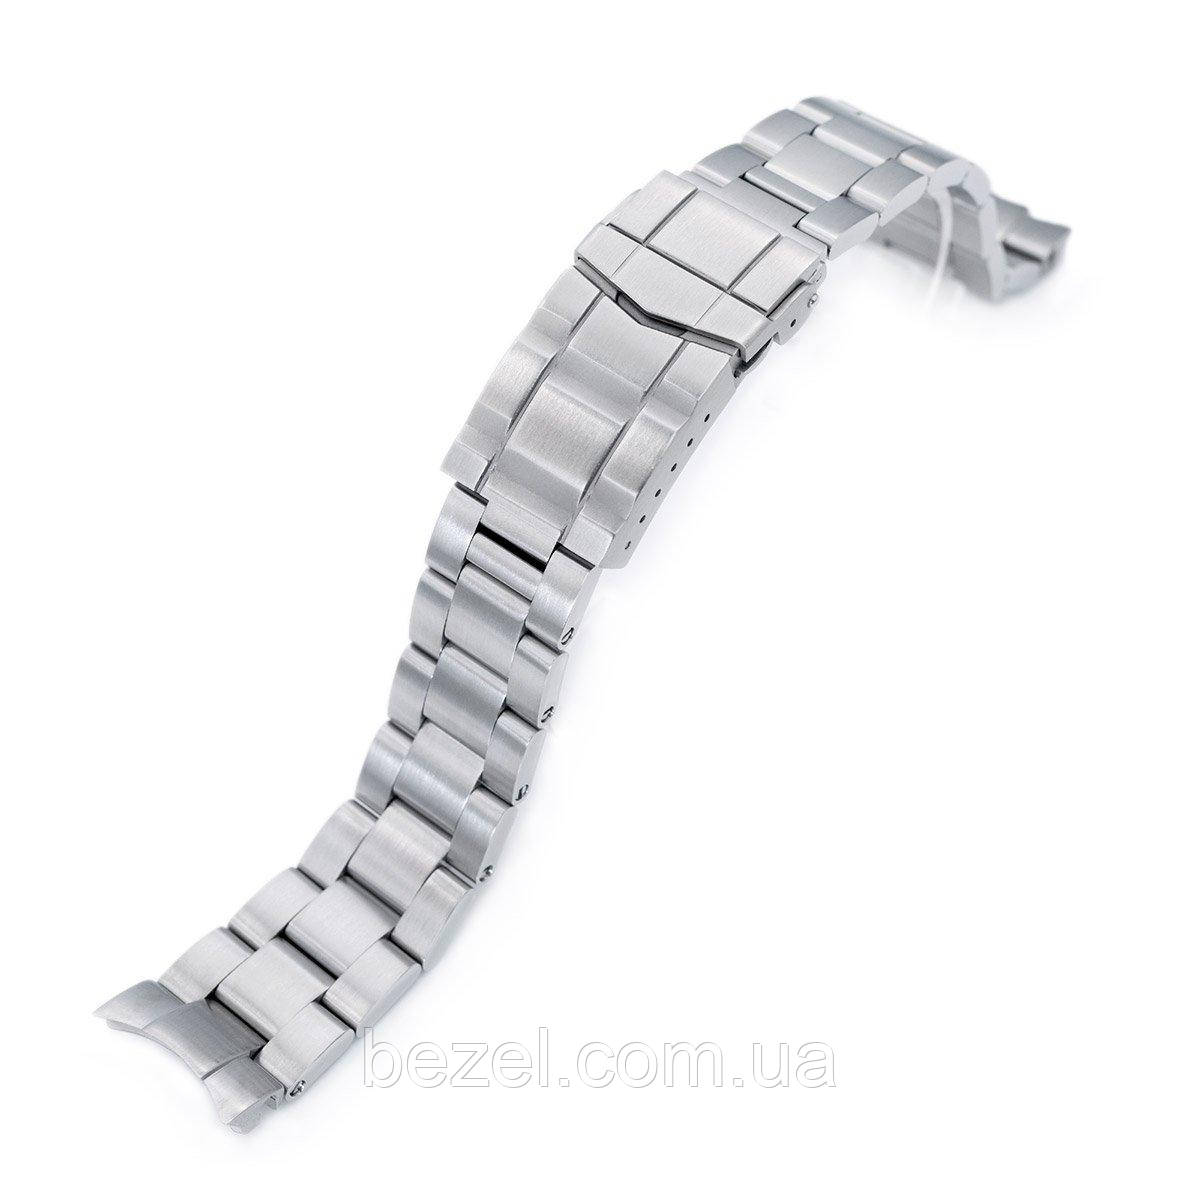 20mm Super 3D Oyster 316L Stainless Steel Watch Bracelet for Seiko Mechanical Automatic SARB033, Submariner Clasp, Brushed